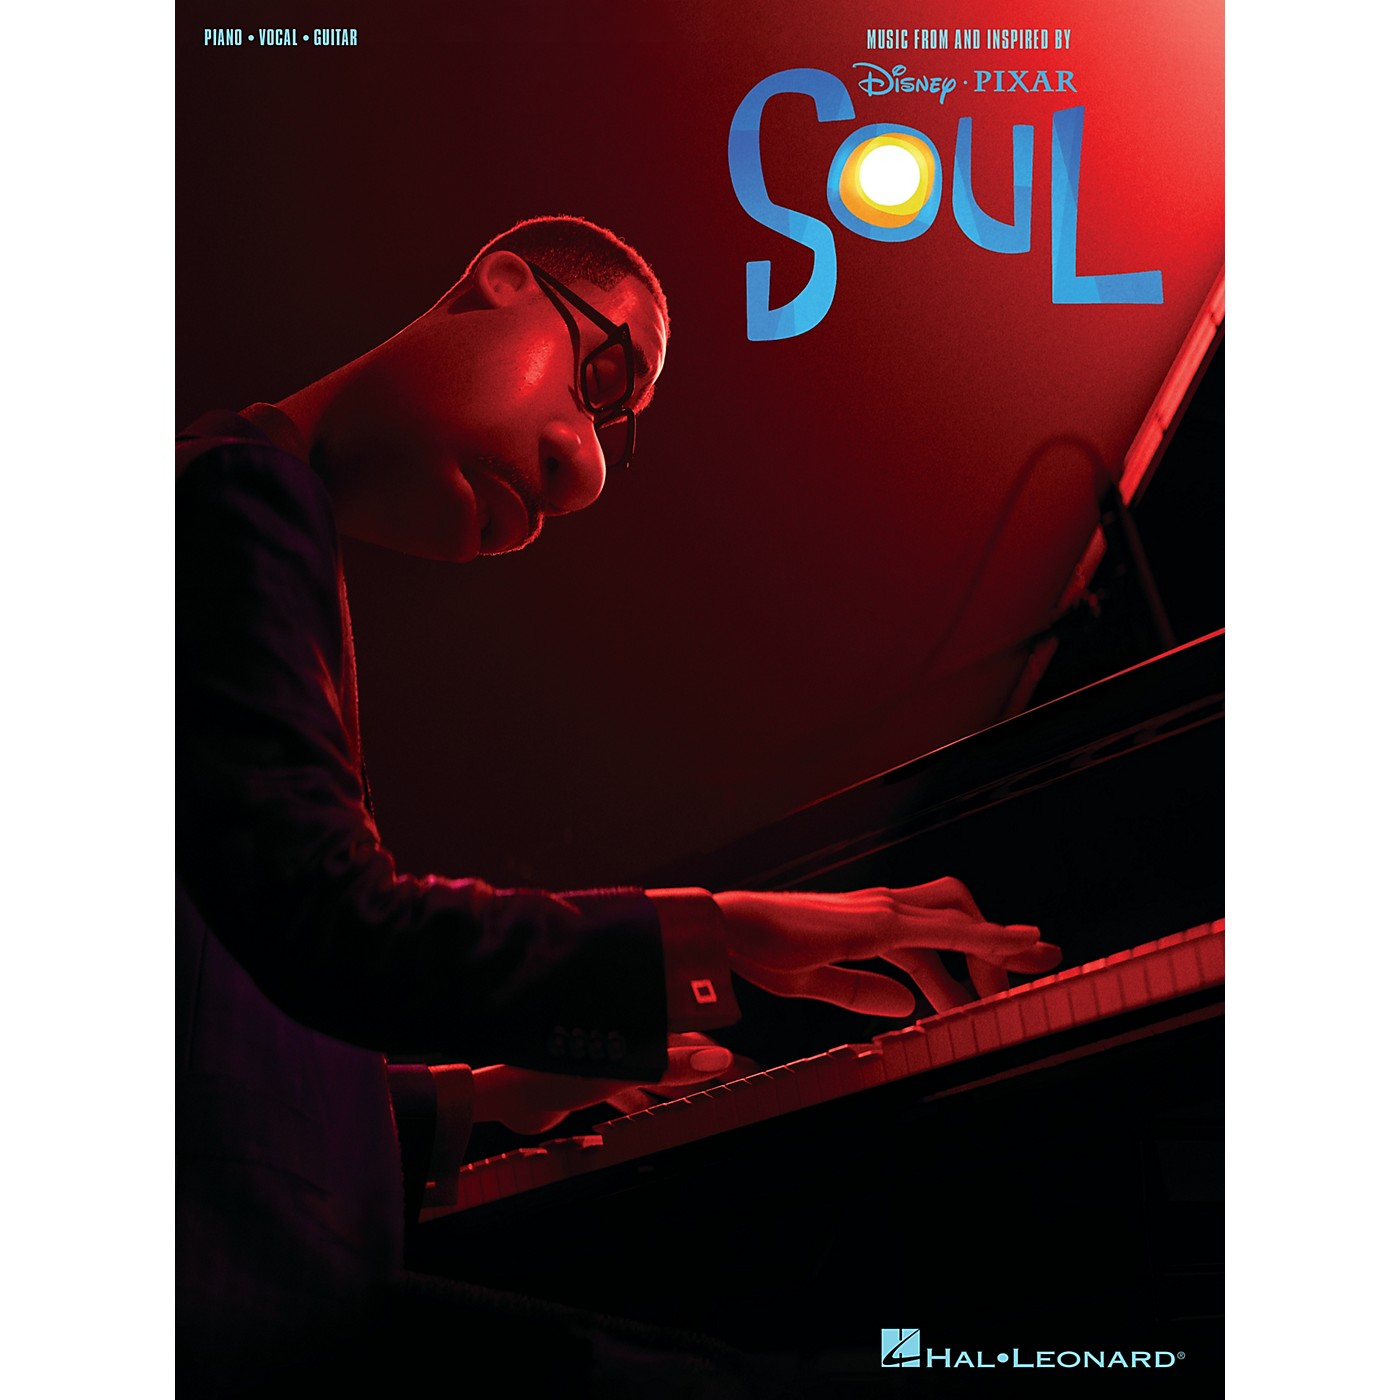 Hal Leonard Soul (Music from and Inspired by the Disney/Pixar Motion Picture) Piano/Vocal/Guitar Songbook thumbnail